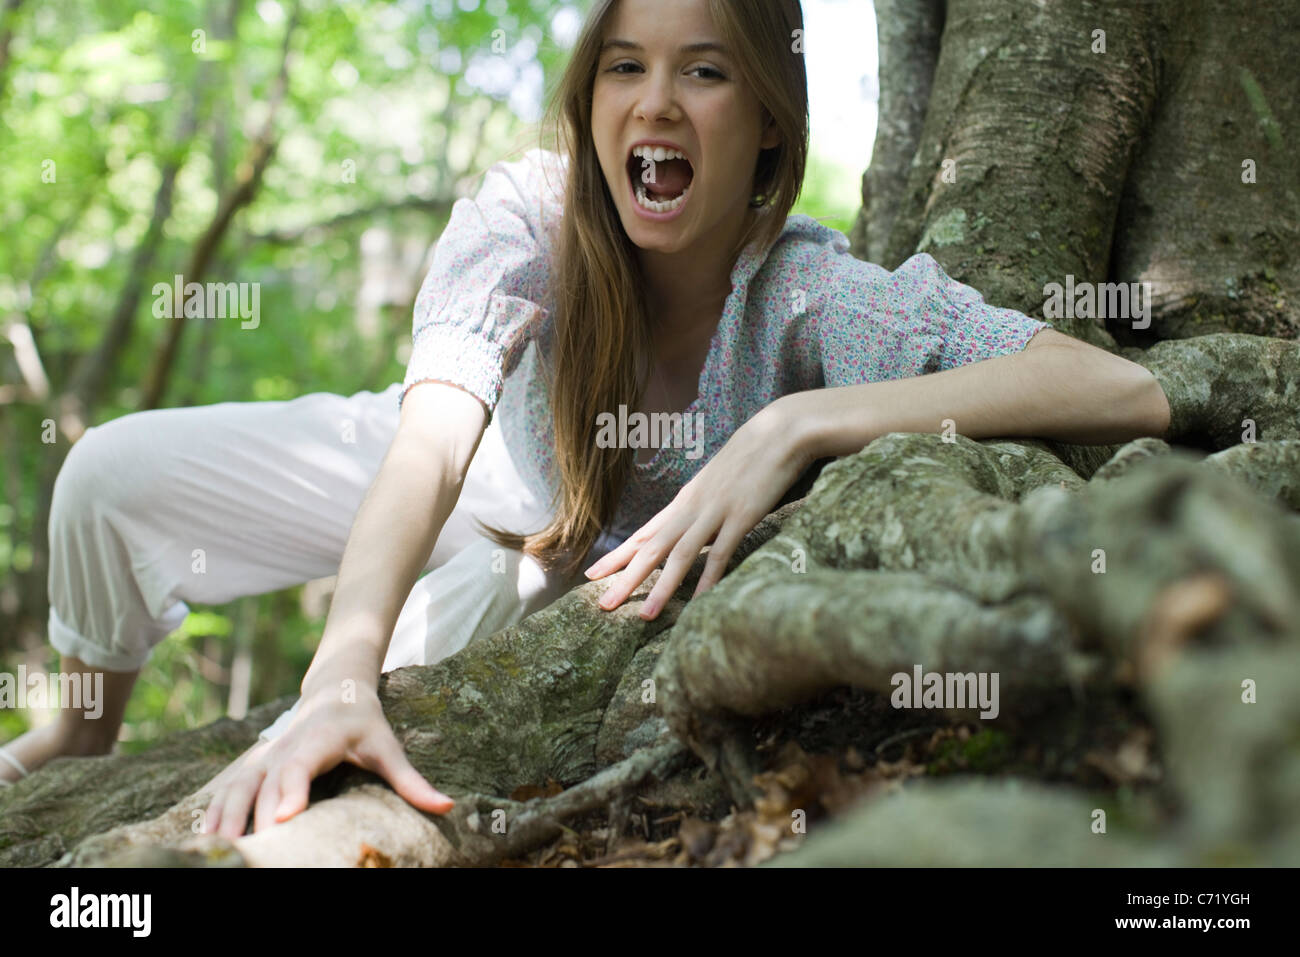 Young woman with mouth open climbing on roots of tree - Stock Image